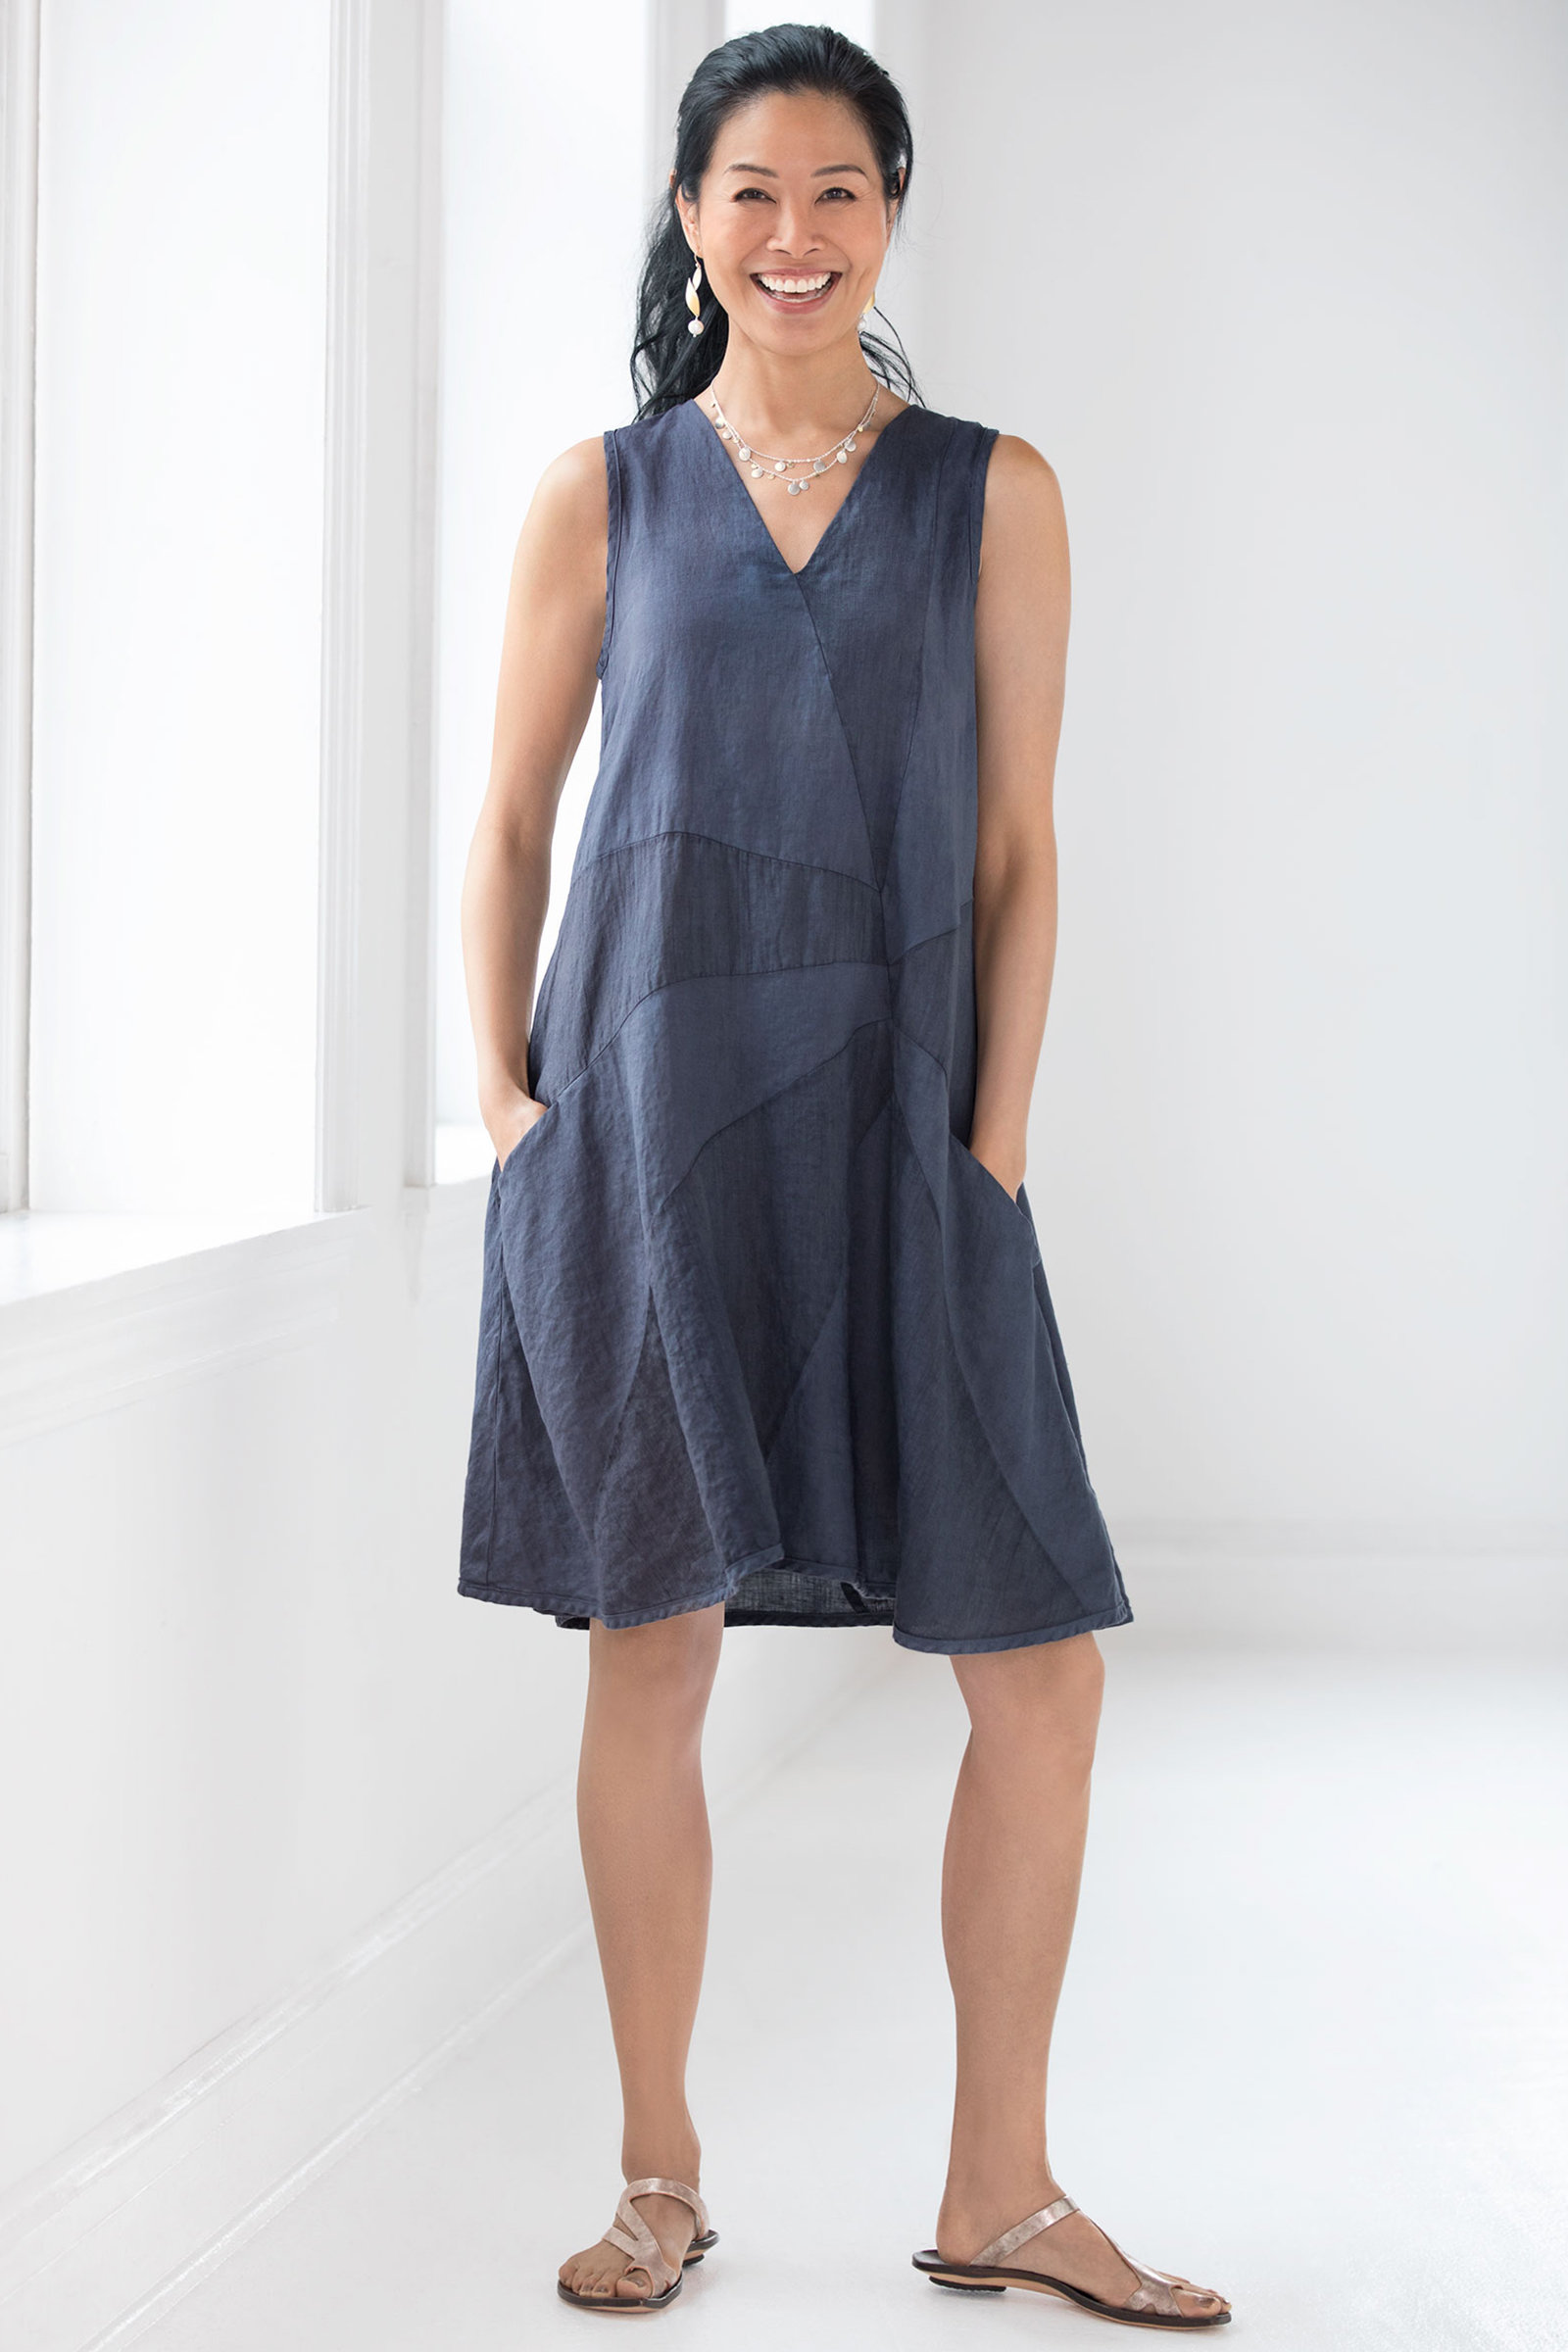 Pinwheel Dress By Cynthia Ashby Linen Dress Artful Home